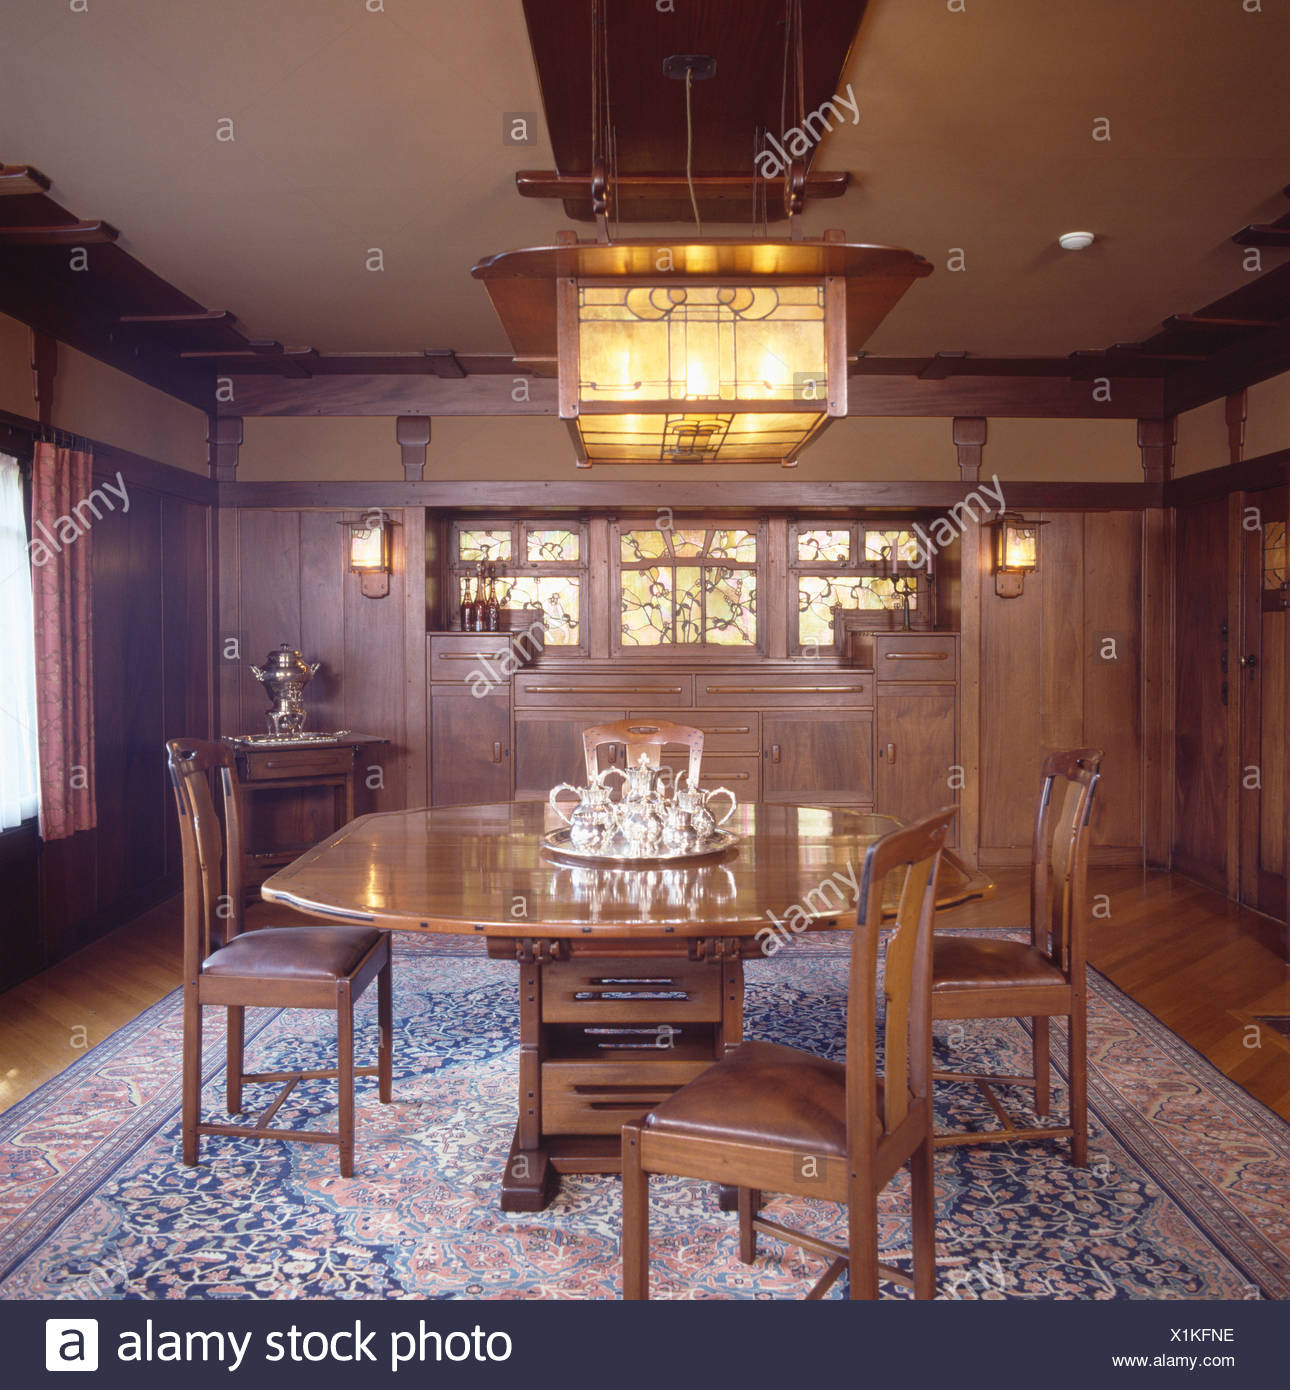 Arts And Crafts Light Above Wooden Table And Chairs In Paneled Dining Room  In The Gamble House Designed By Greene And Greene